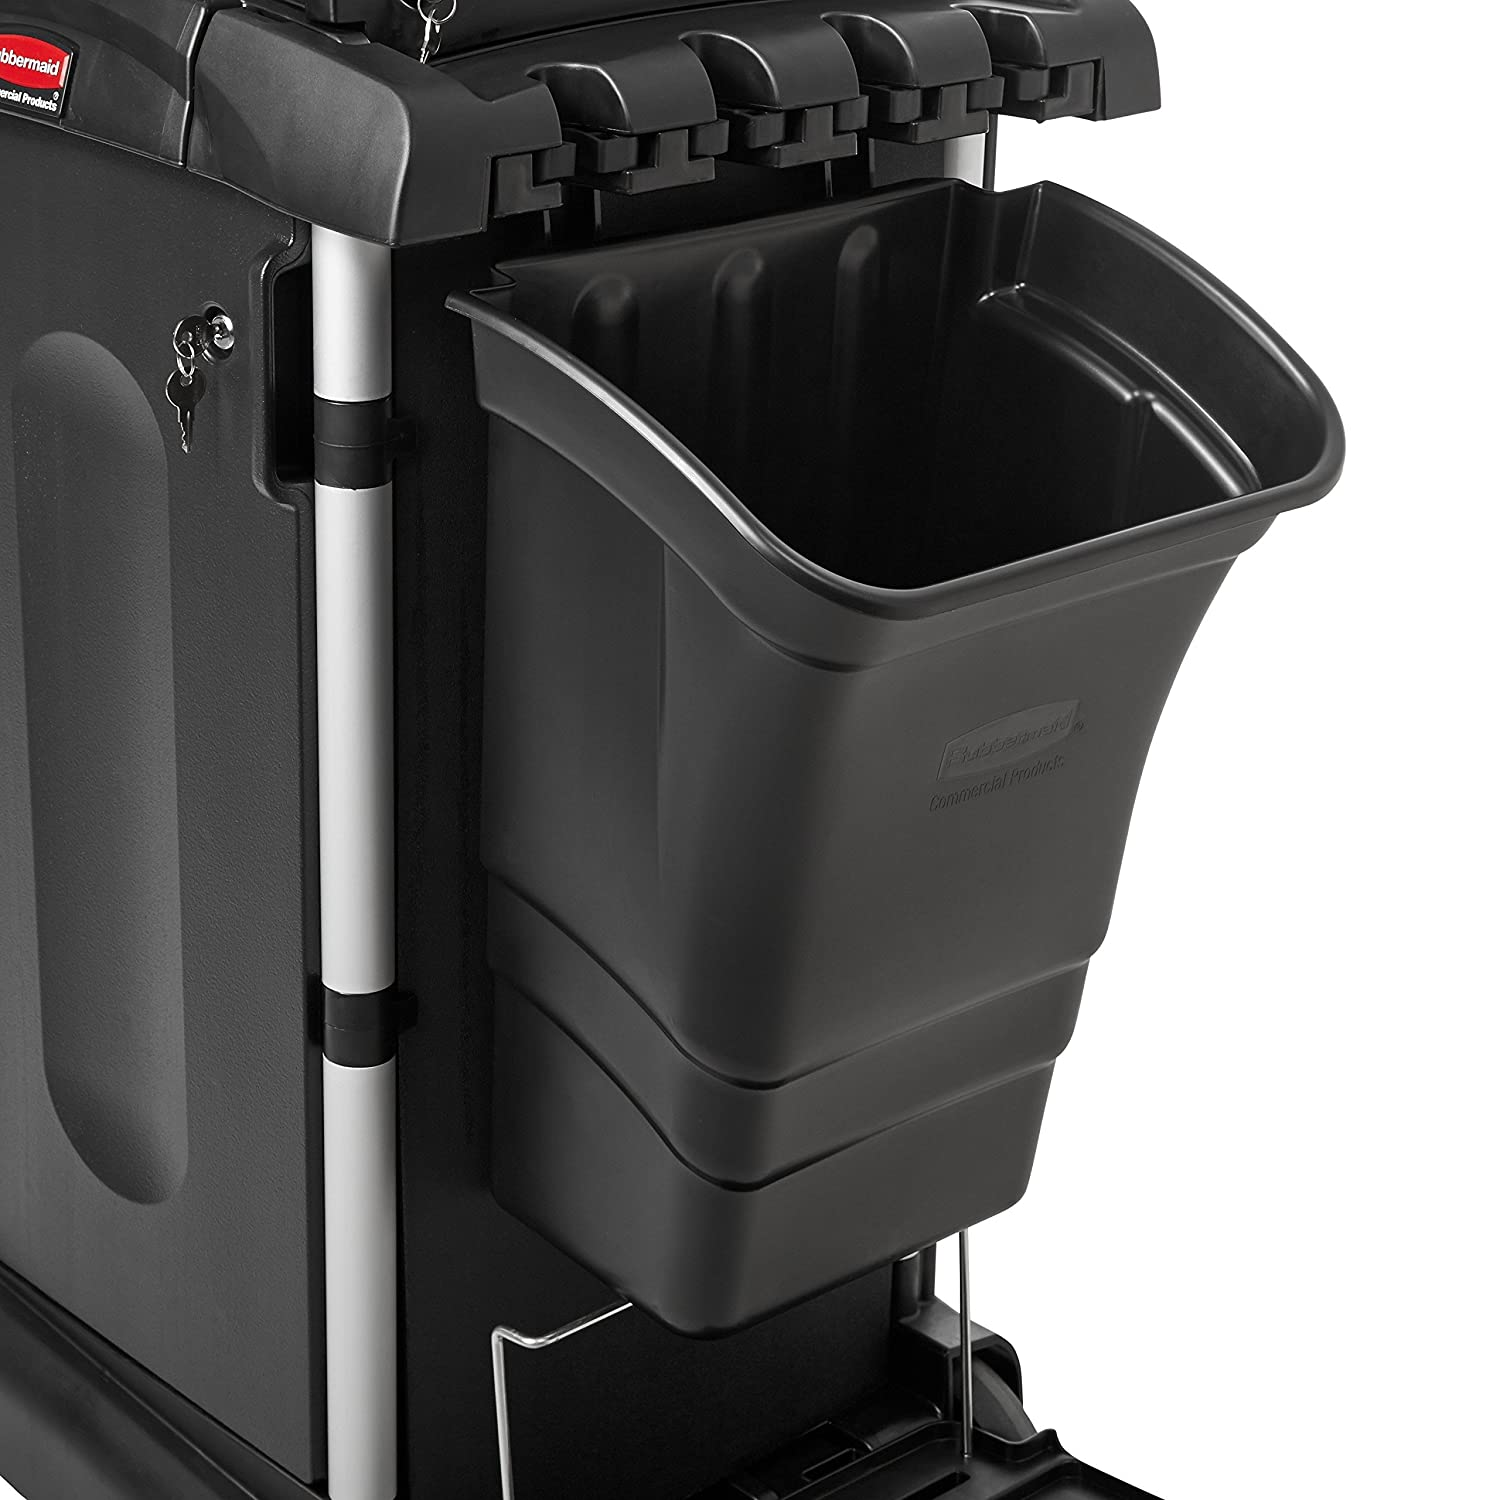 31.63 Height Brown 34 Length 1.88 Width 31.63 Height Rubbermaid Commercial Products FG619700BRN Rubbermaid FG619700 Locking Door Kit for Full Size and Compact Housekeeping Carts 1.88 Width 34 Length